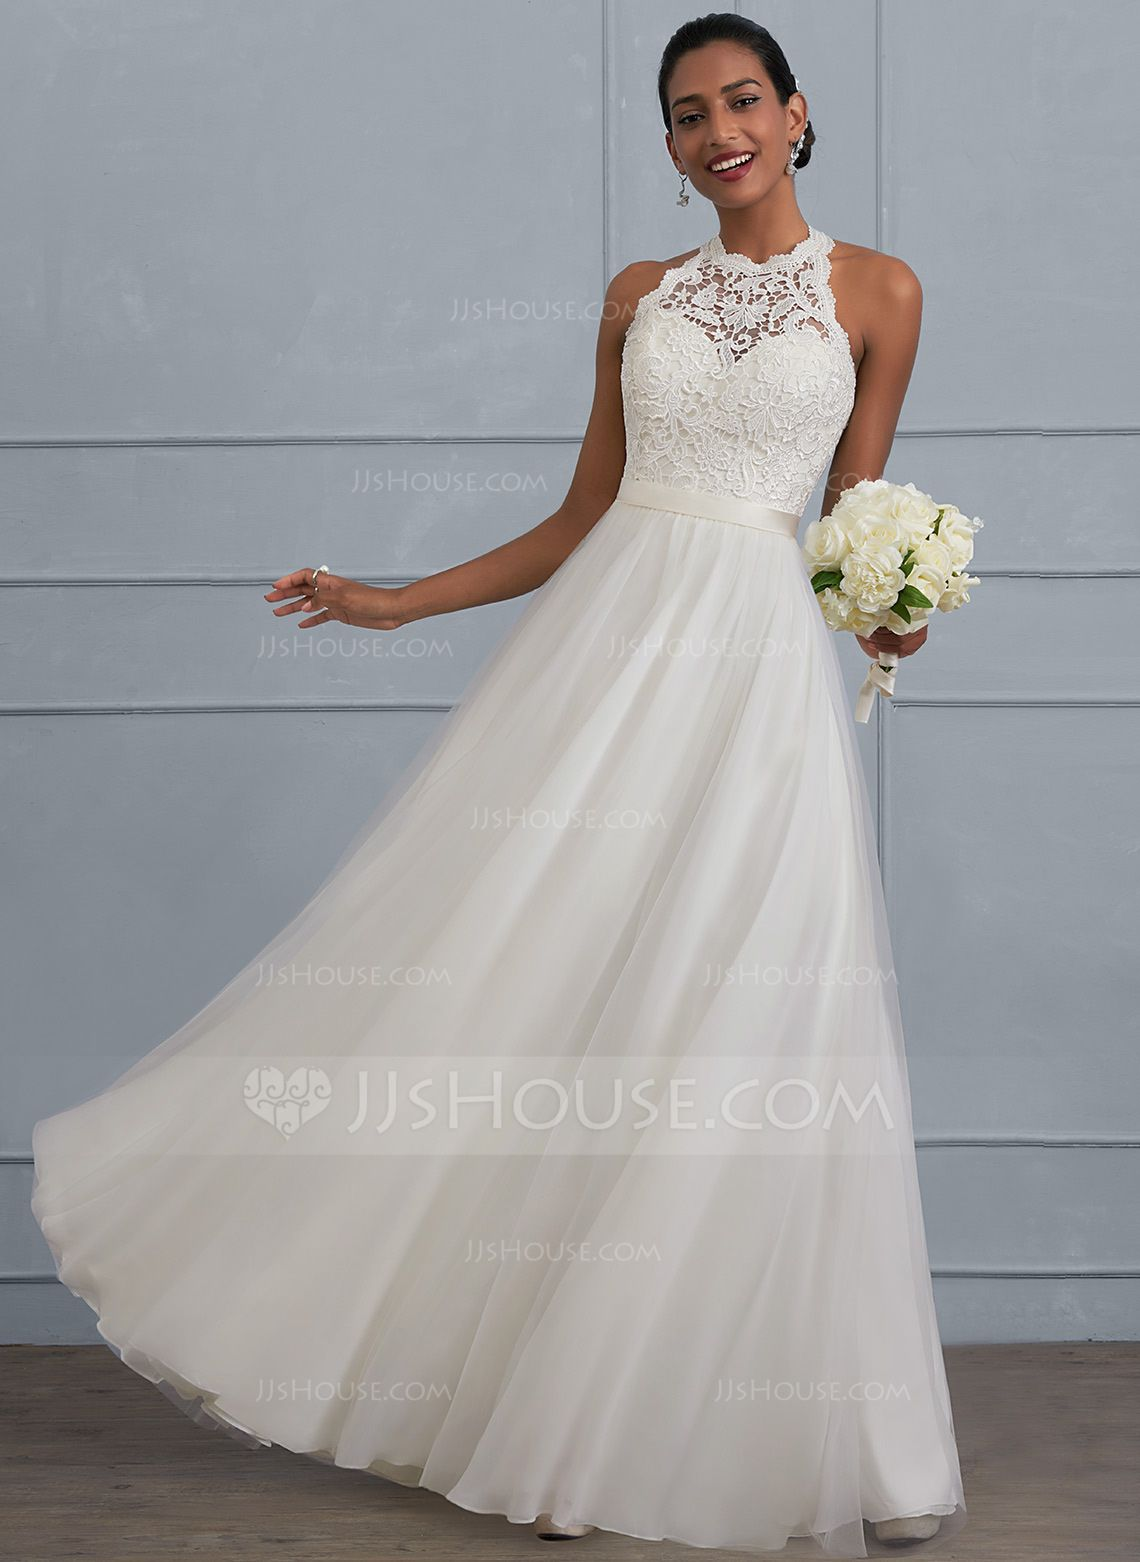 Outside wedding dresses   Outside Wedding Dresses  Womenus Dresses for Wedding Guest